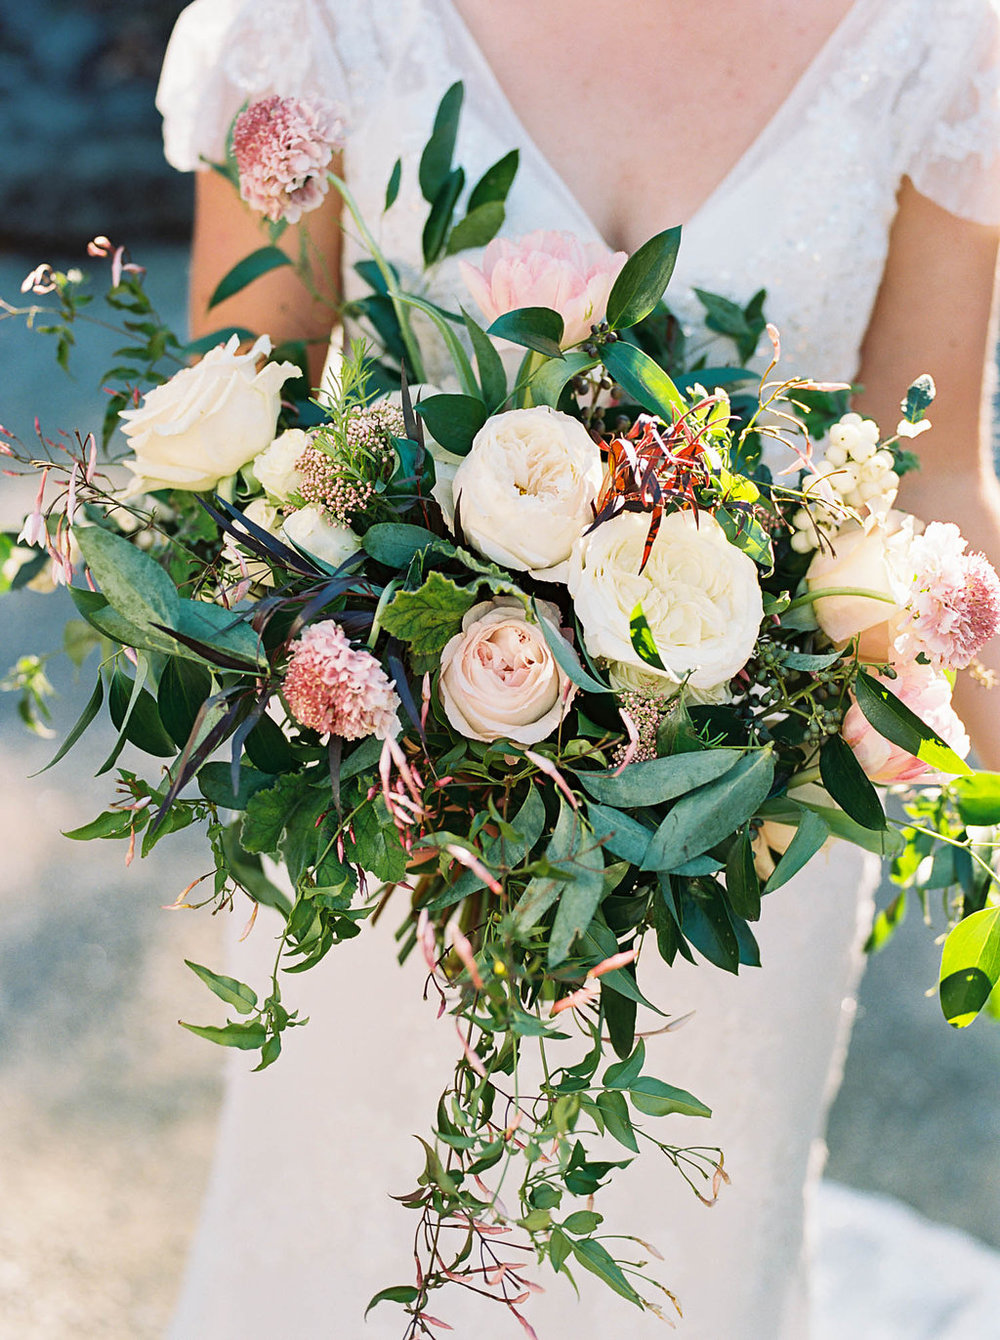 Lush, natural bridal bouquet with blush garden roses, tulips, ranunculus, and greenery // Nashville Wedding Florist